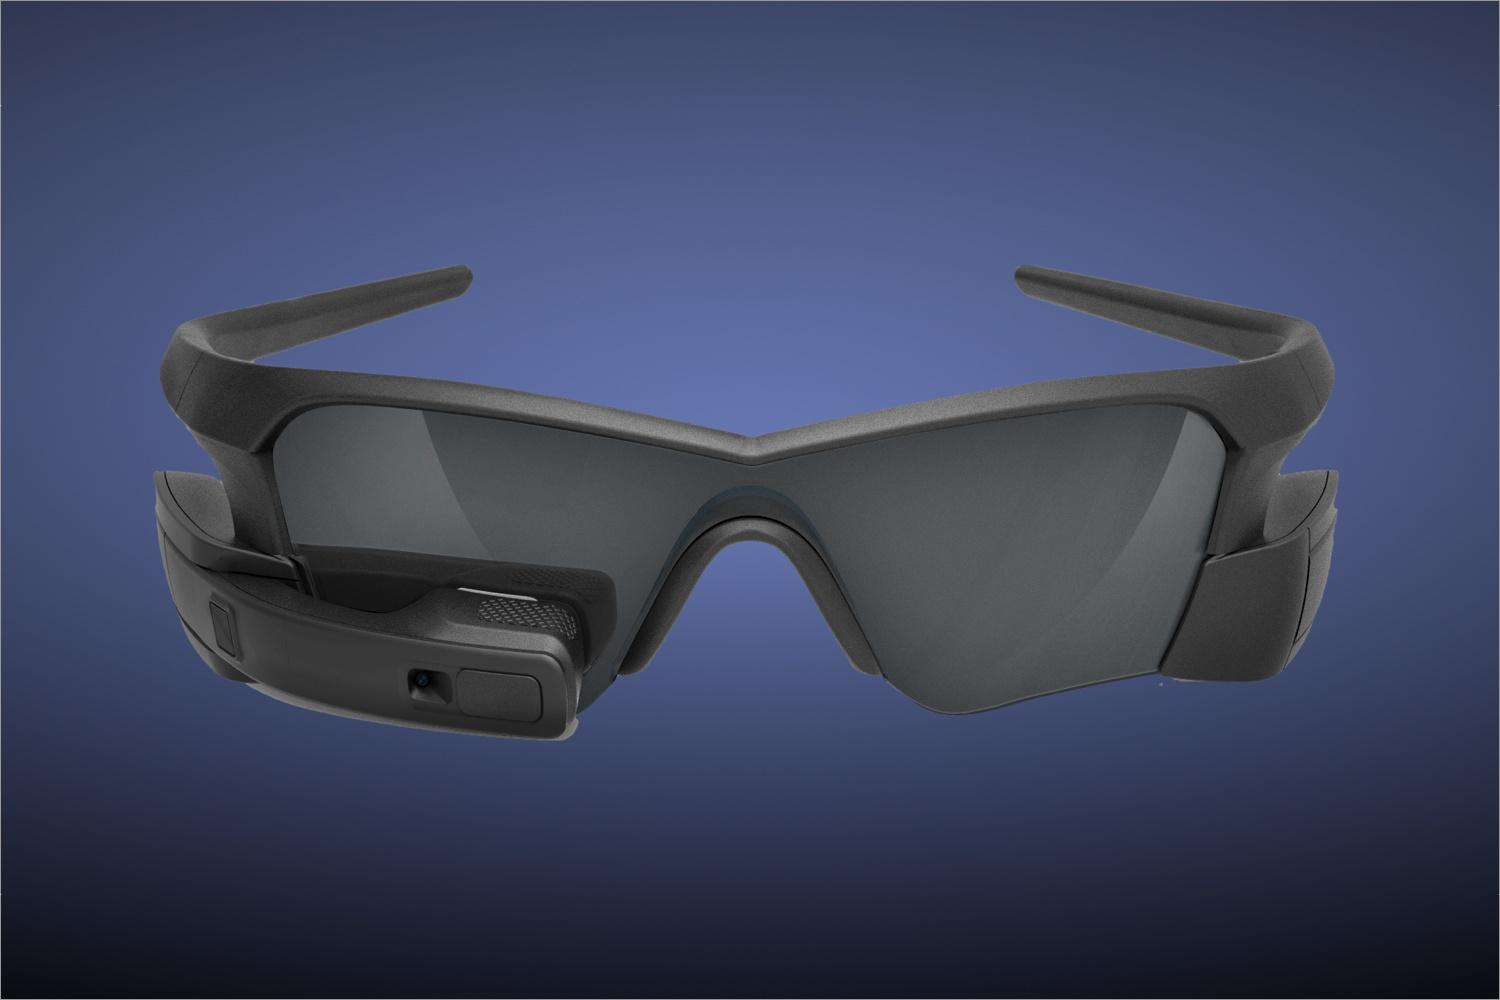 Like Google Glass, But For Sports